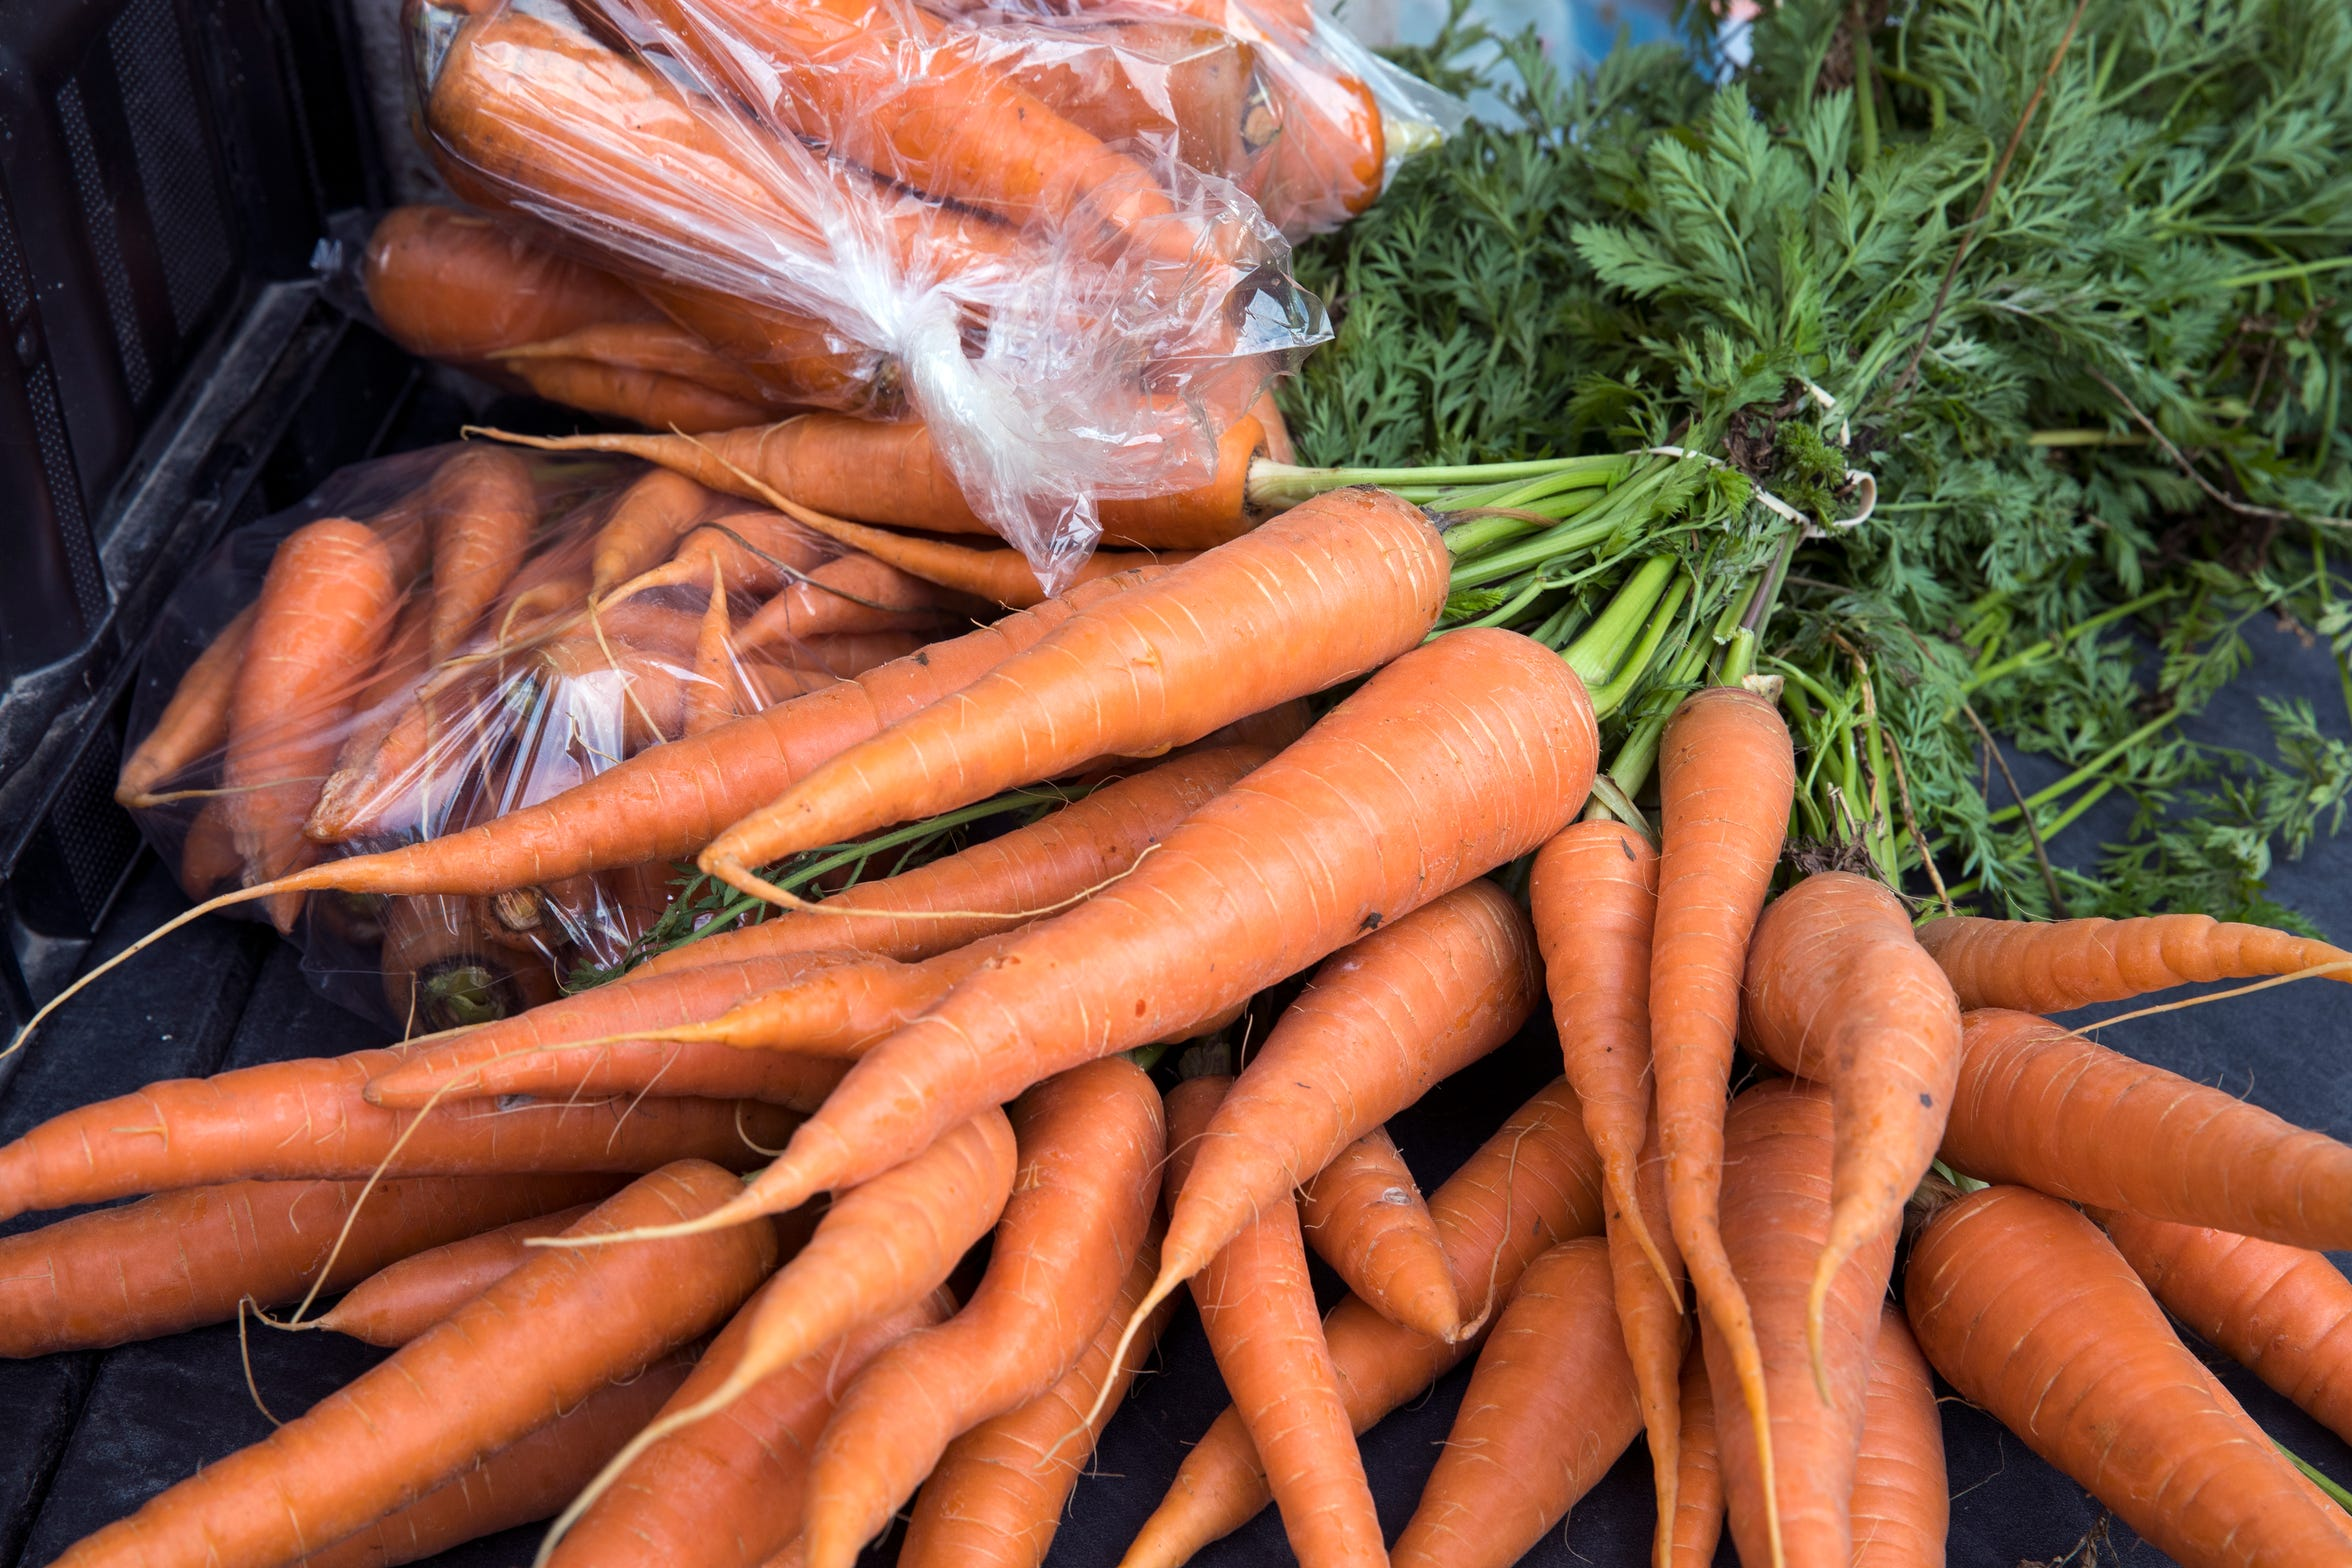 Locally-grown carrots is one example of what shoppers can buy at the Corpus Christi Downtown Farmers Market on Wednesday, April 24, 2019. The farmers market offers a variety of seasonal produce, grass fed beef, pastured raised poultry, prepared goods such as roasted coffee, sweets and preserves and baked goods. It is open weekly on Wednesday from 5 to 8 pm at 100 N. Shoreline Blvd.